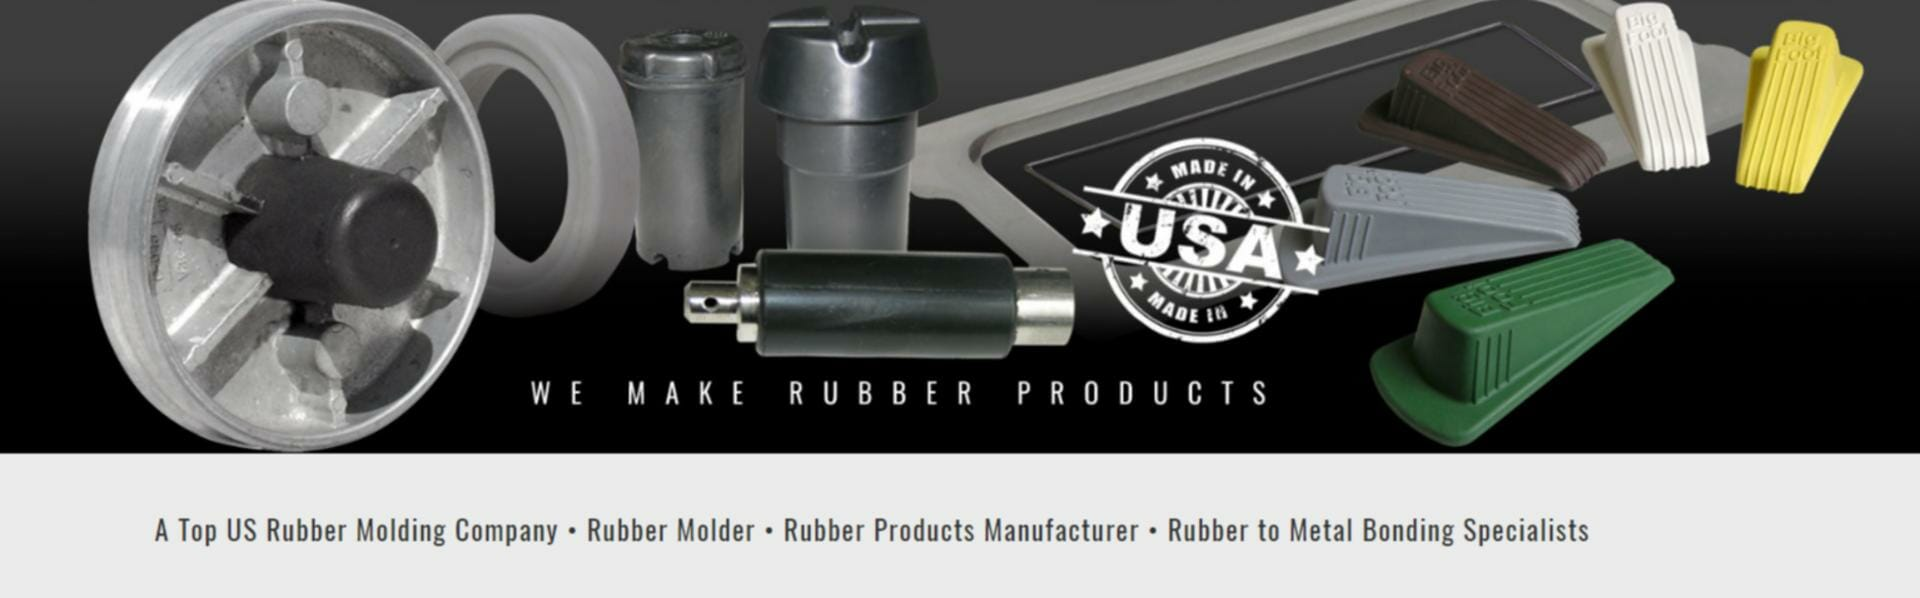 Rubber Products Made in the USA | Rubber to Metal Molding